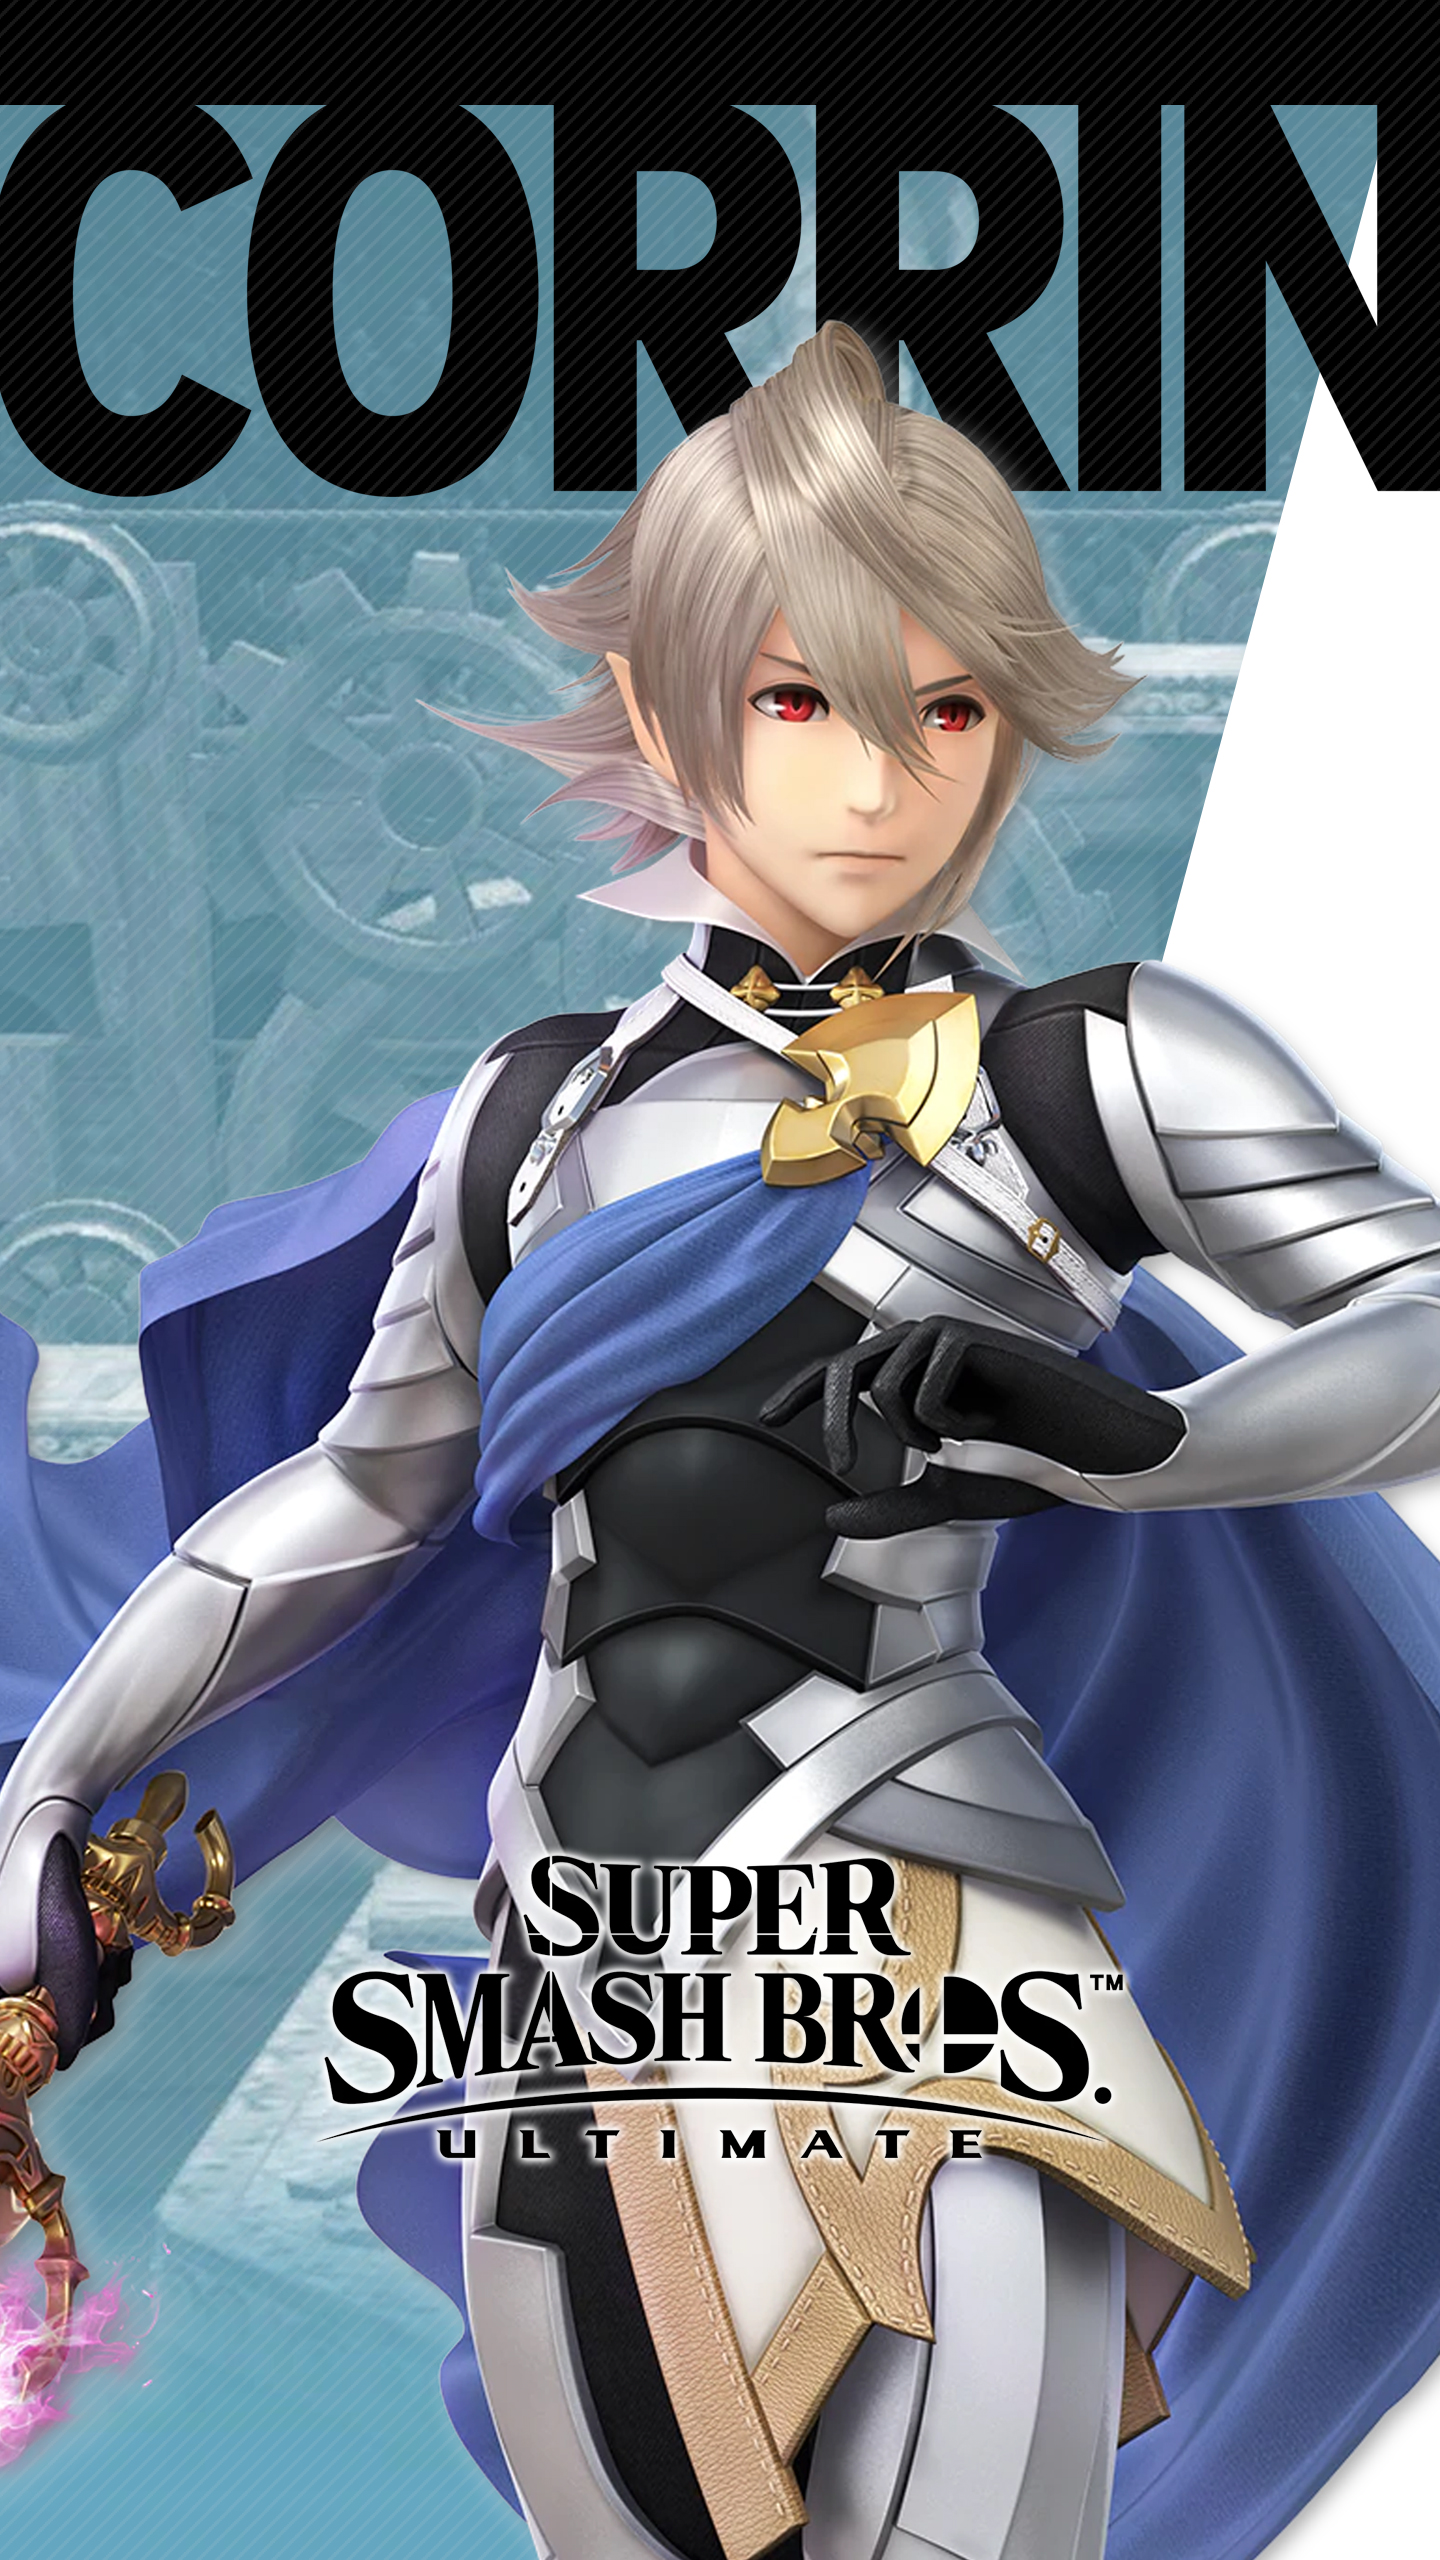 Iphone Wallpaper Size Super Smash Bros Ultimate Corrin Wallpapers Cat With Monocle